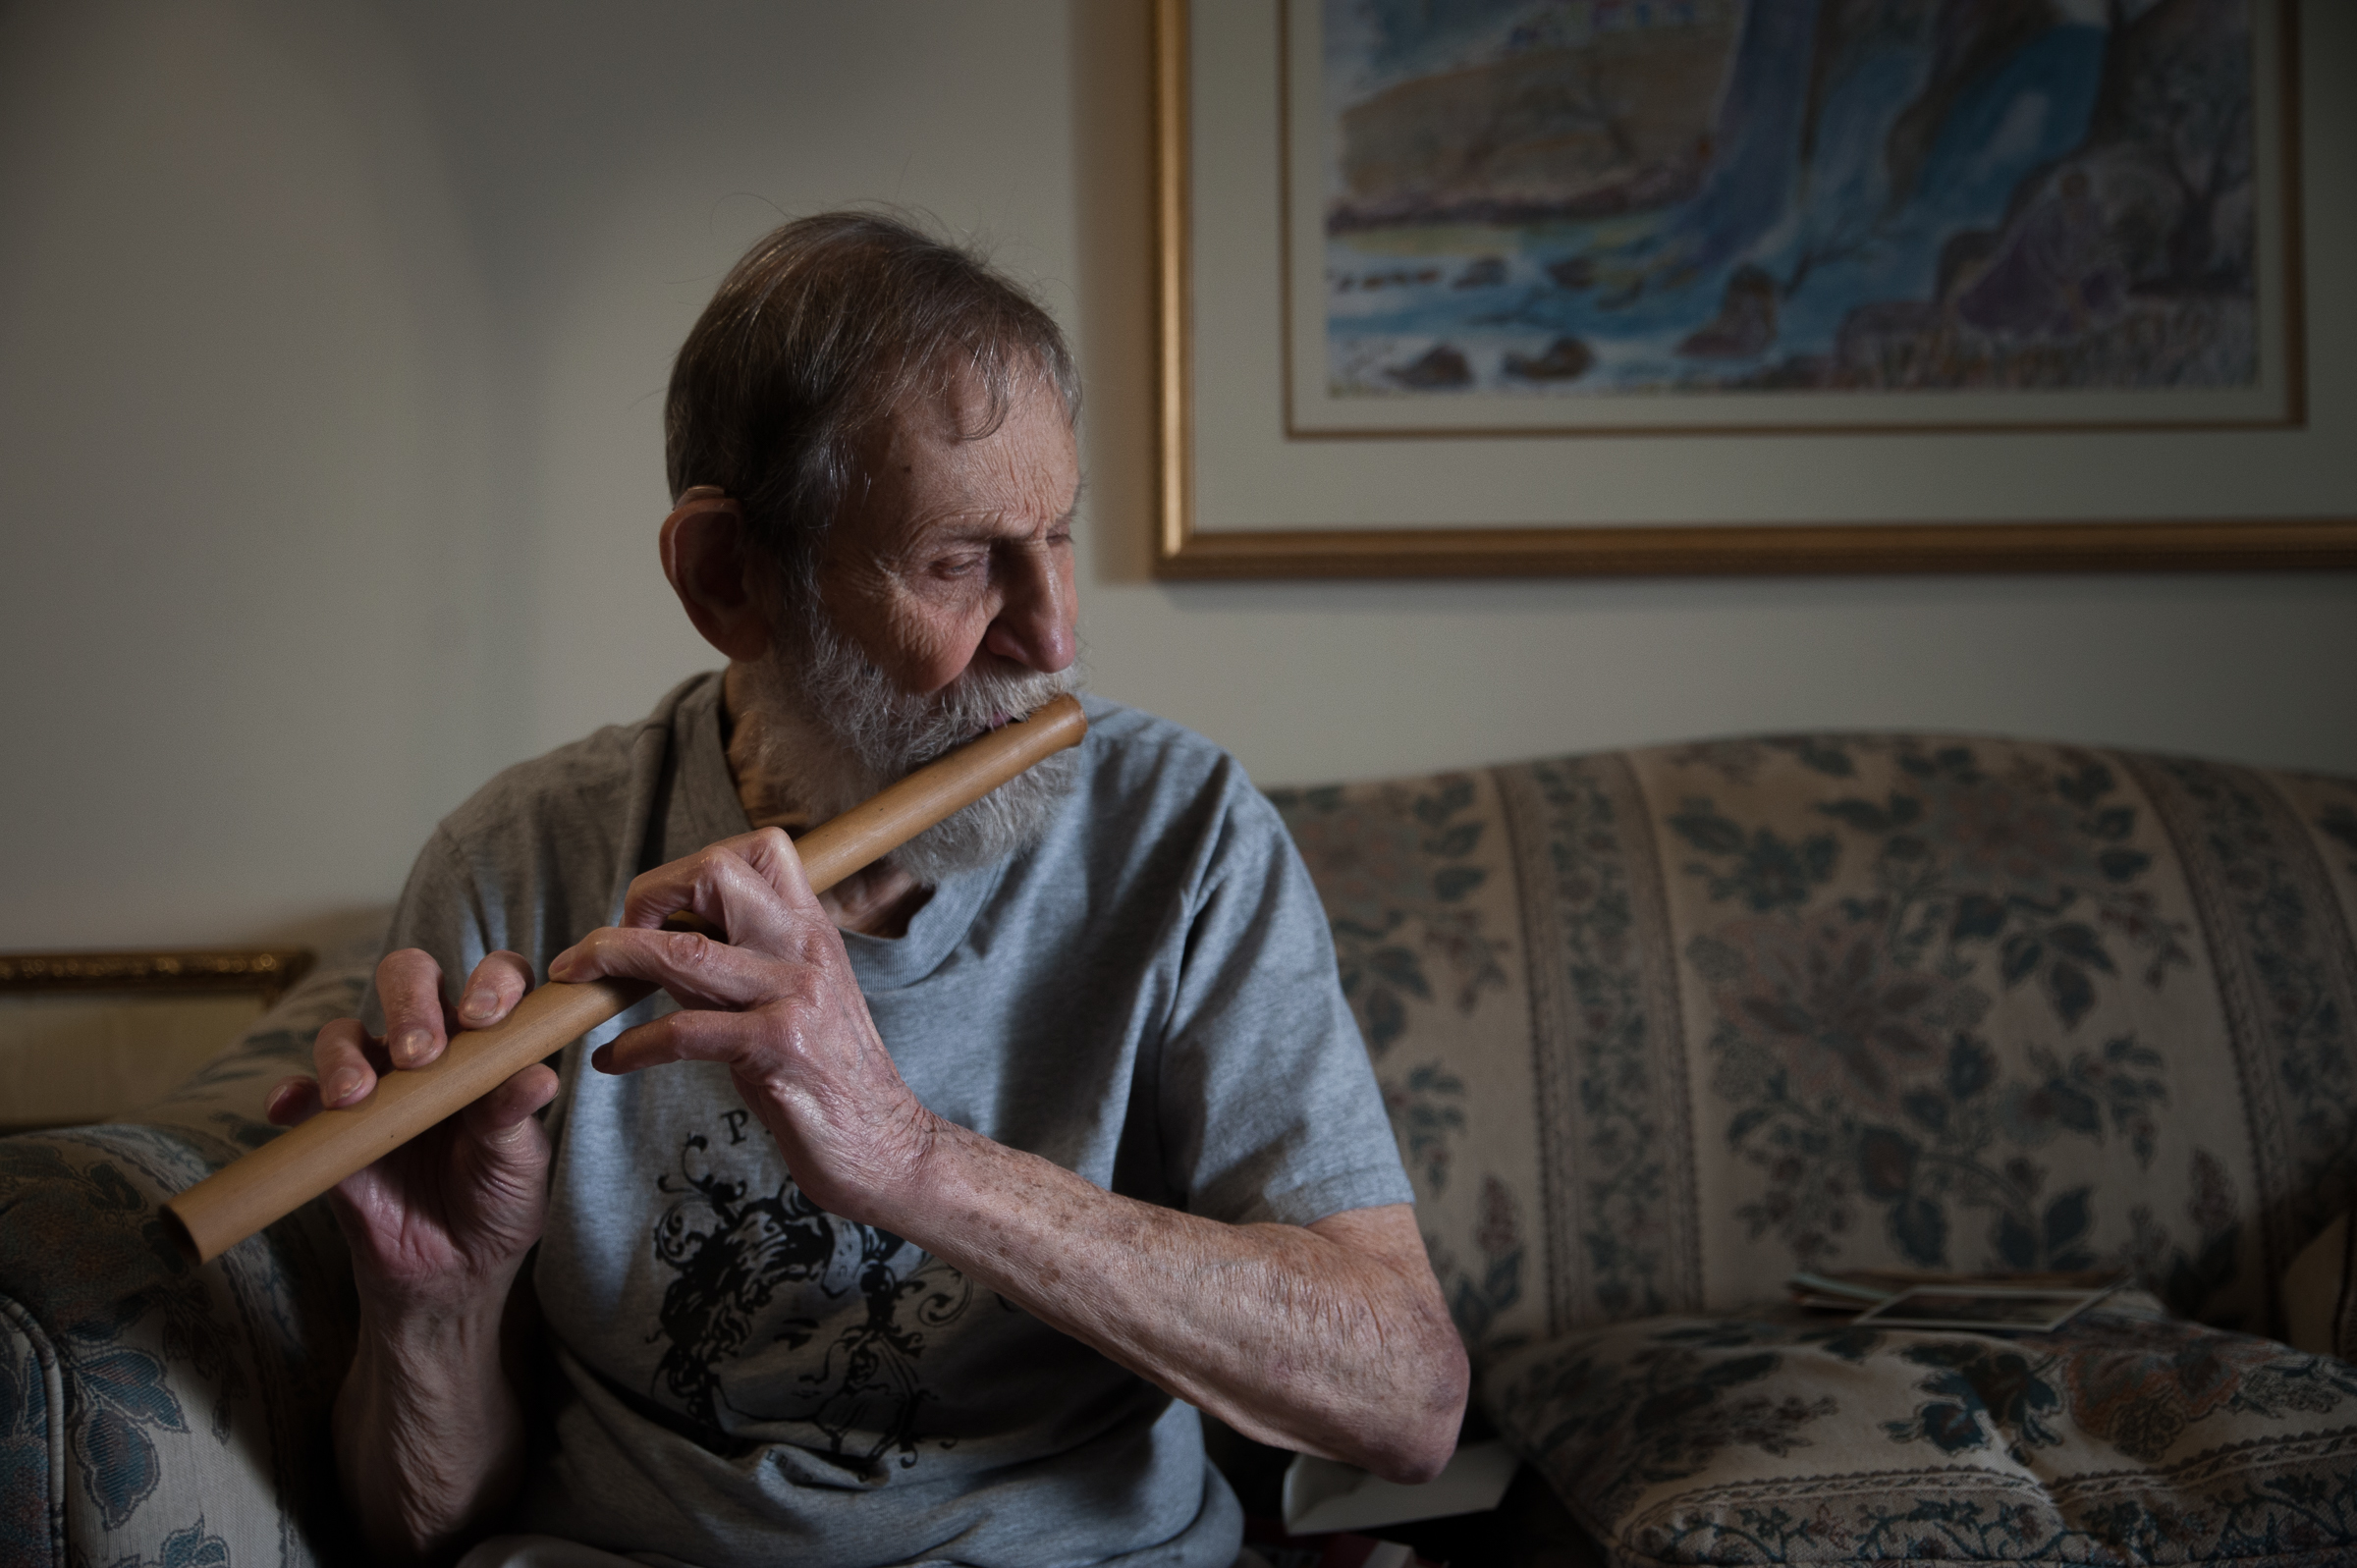 """Robert Mellin, known as """"Uncle Rocky"""" to friends and family, plays a flute acquired on one of his voyages in his apartment at 13th and Lombard streets, June 5th, 2017. Mellin has a reputation of being an intrepid traveller, and is about to embark on a three month journey to Cambodia, Laos, Vietnam, and Thailand. CAMERON B. POLLACK / Staff Photographer"""